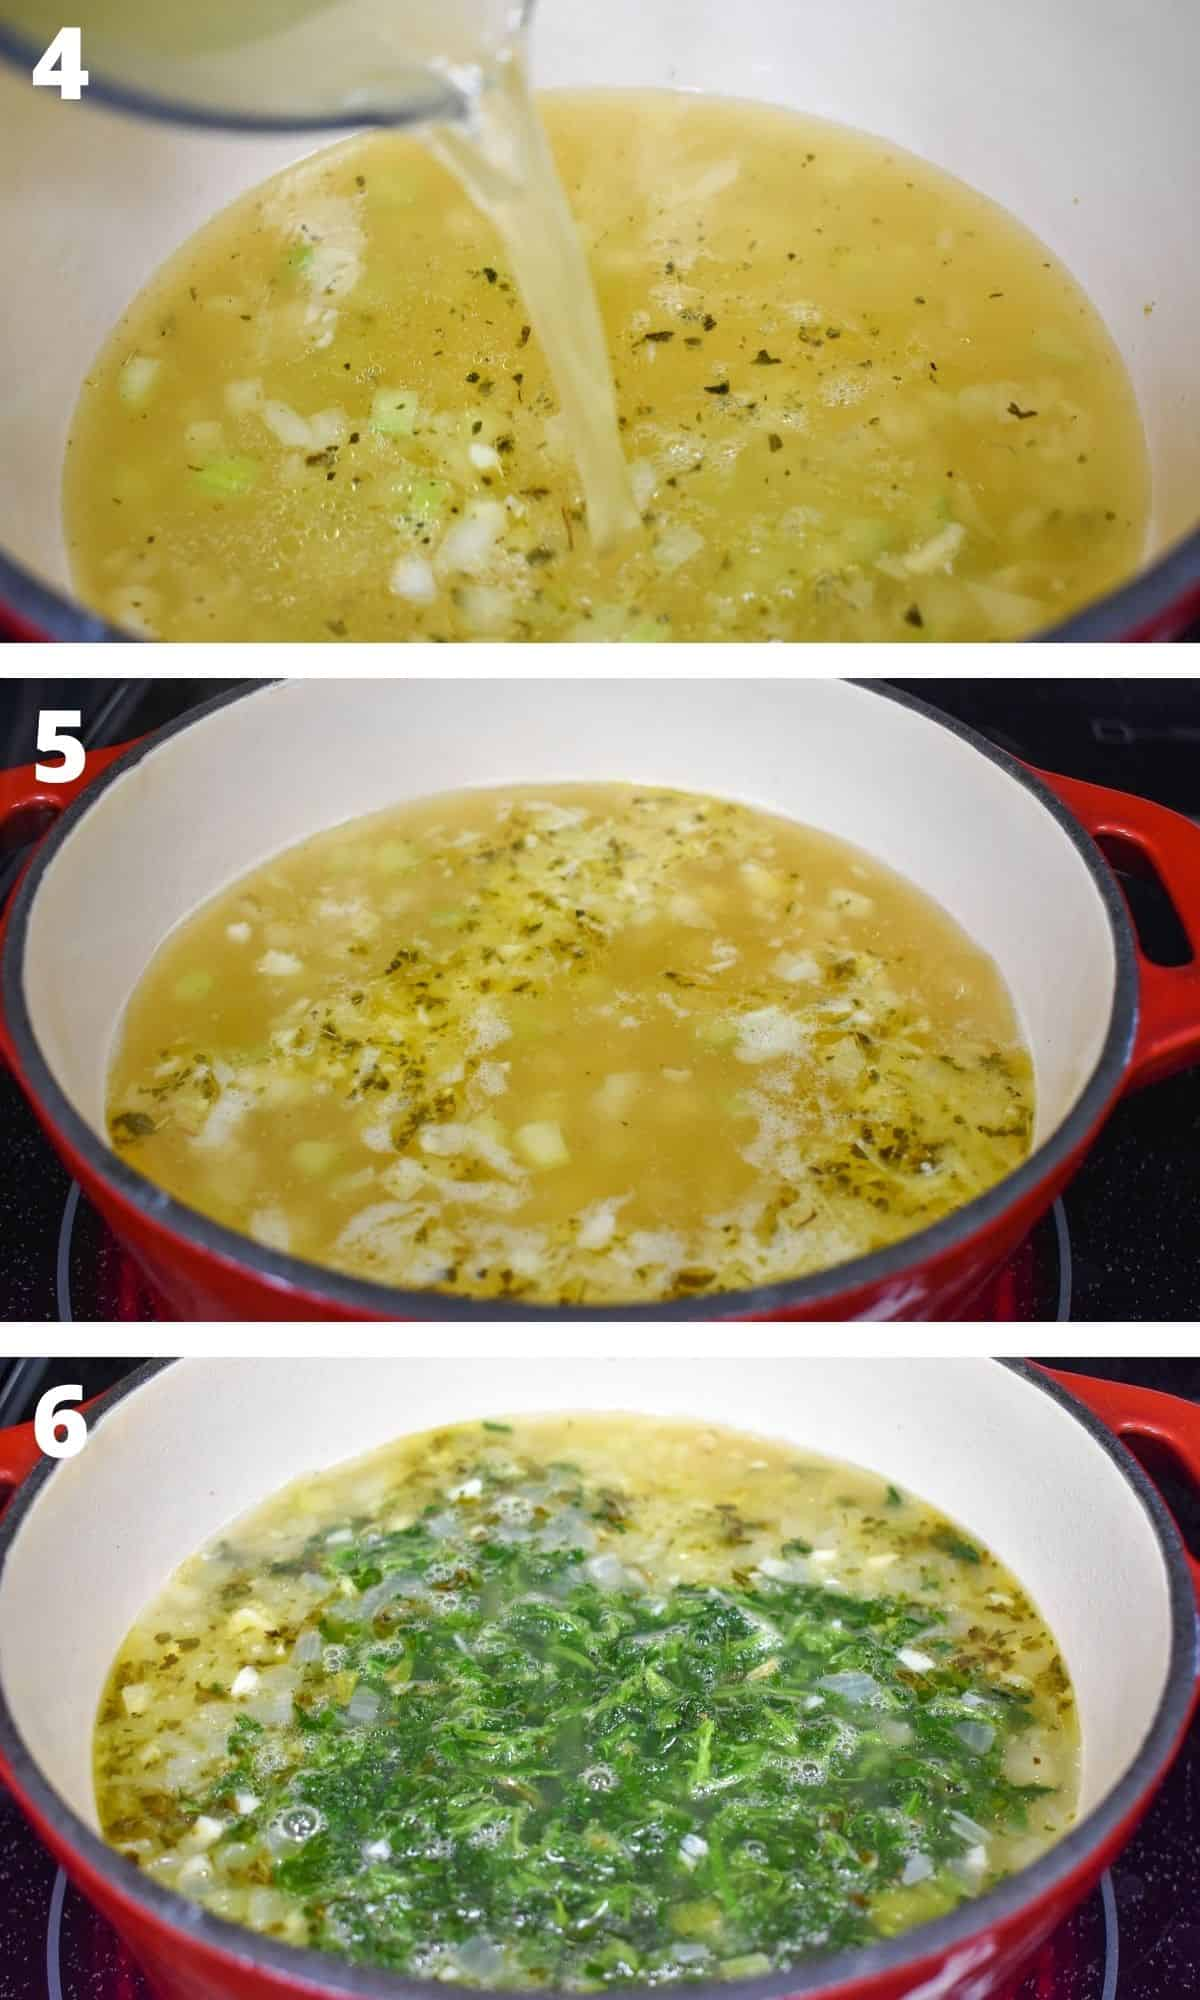 Three images showing the ending steps of making the soup, from adding the broth to adding the spinach.